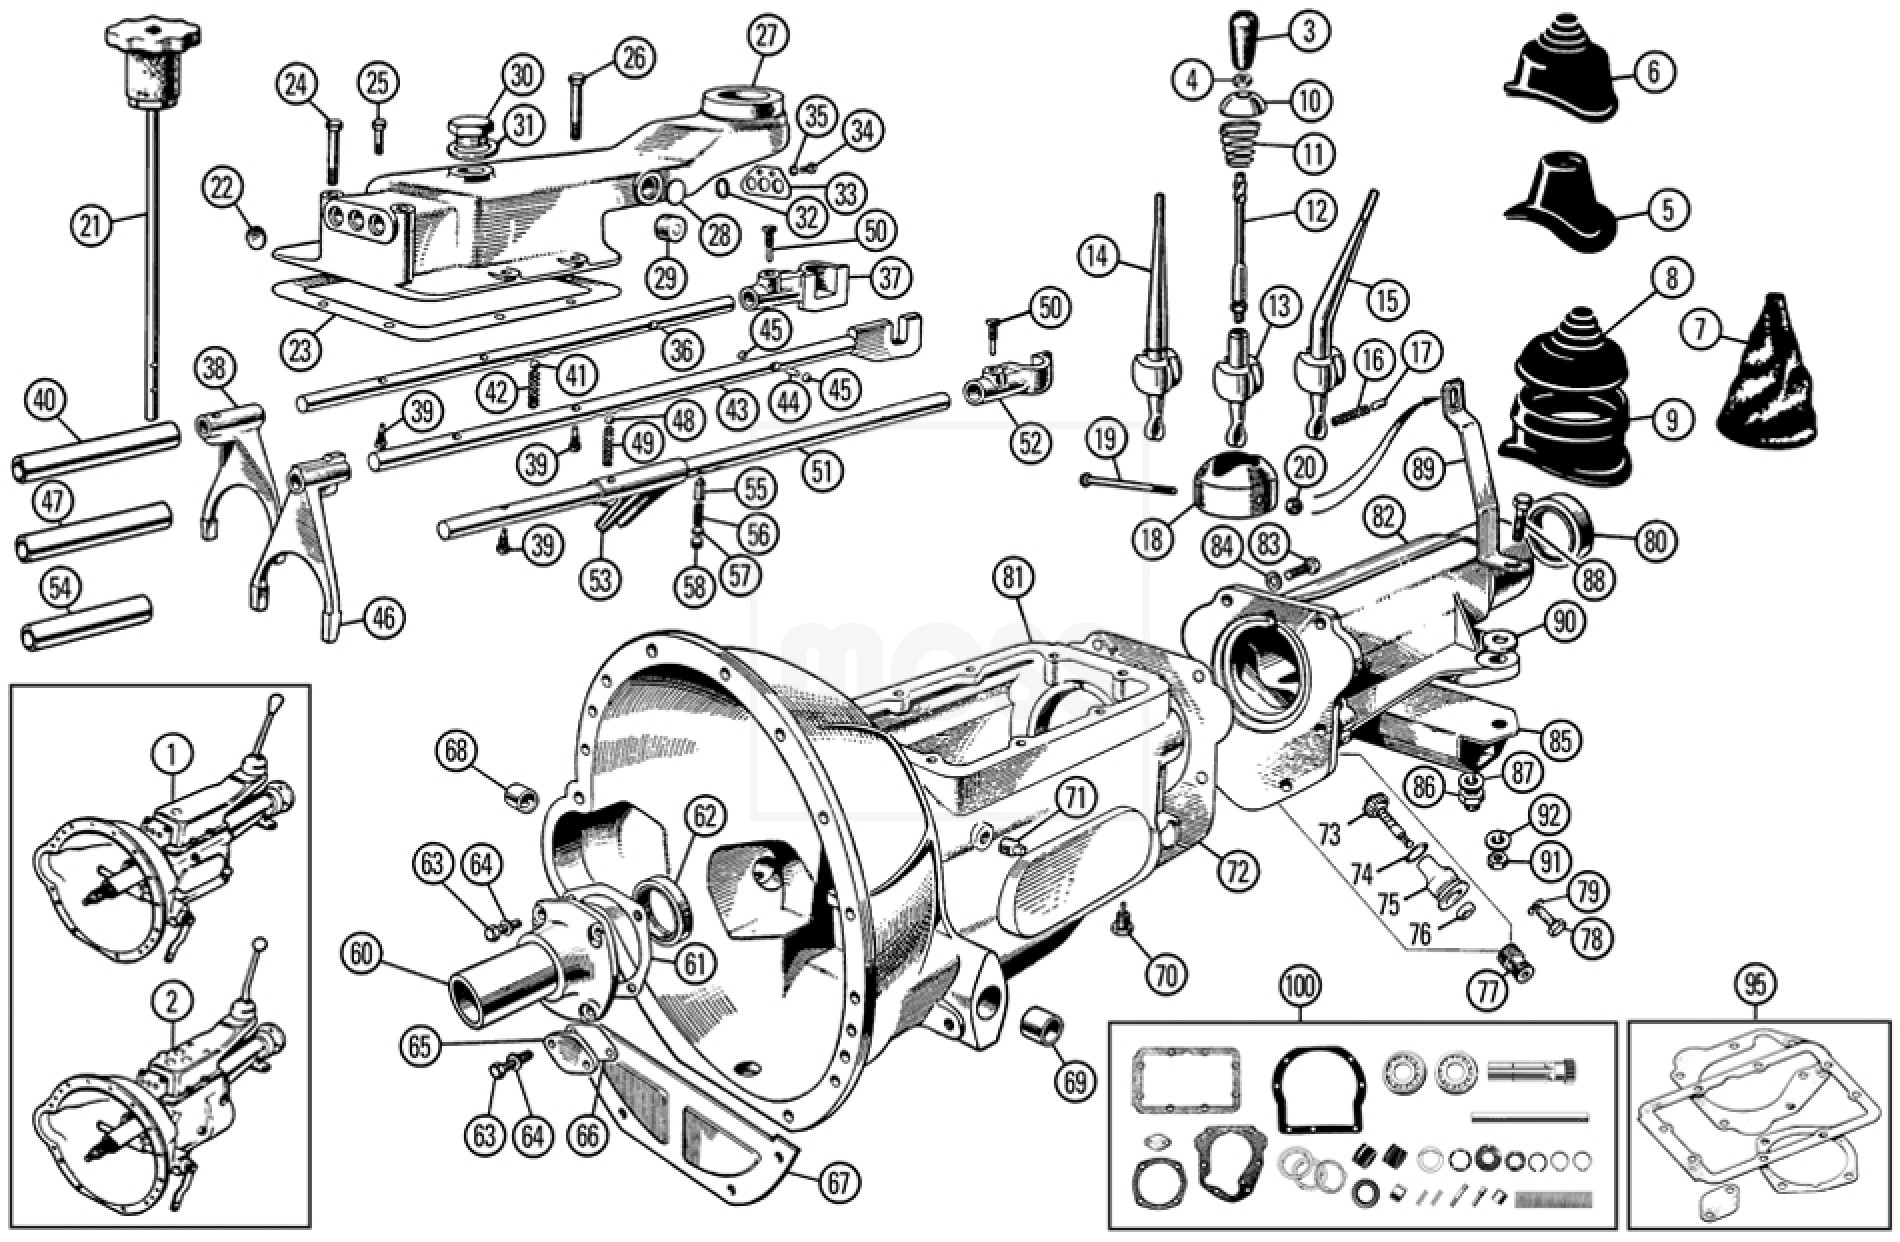 1969 barracuda wiring diagram